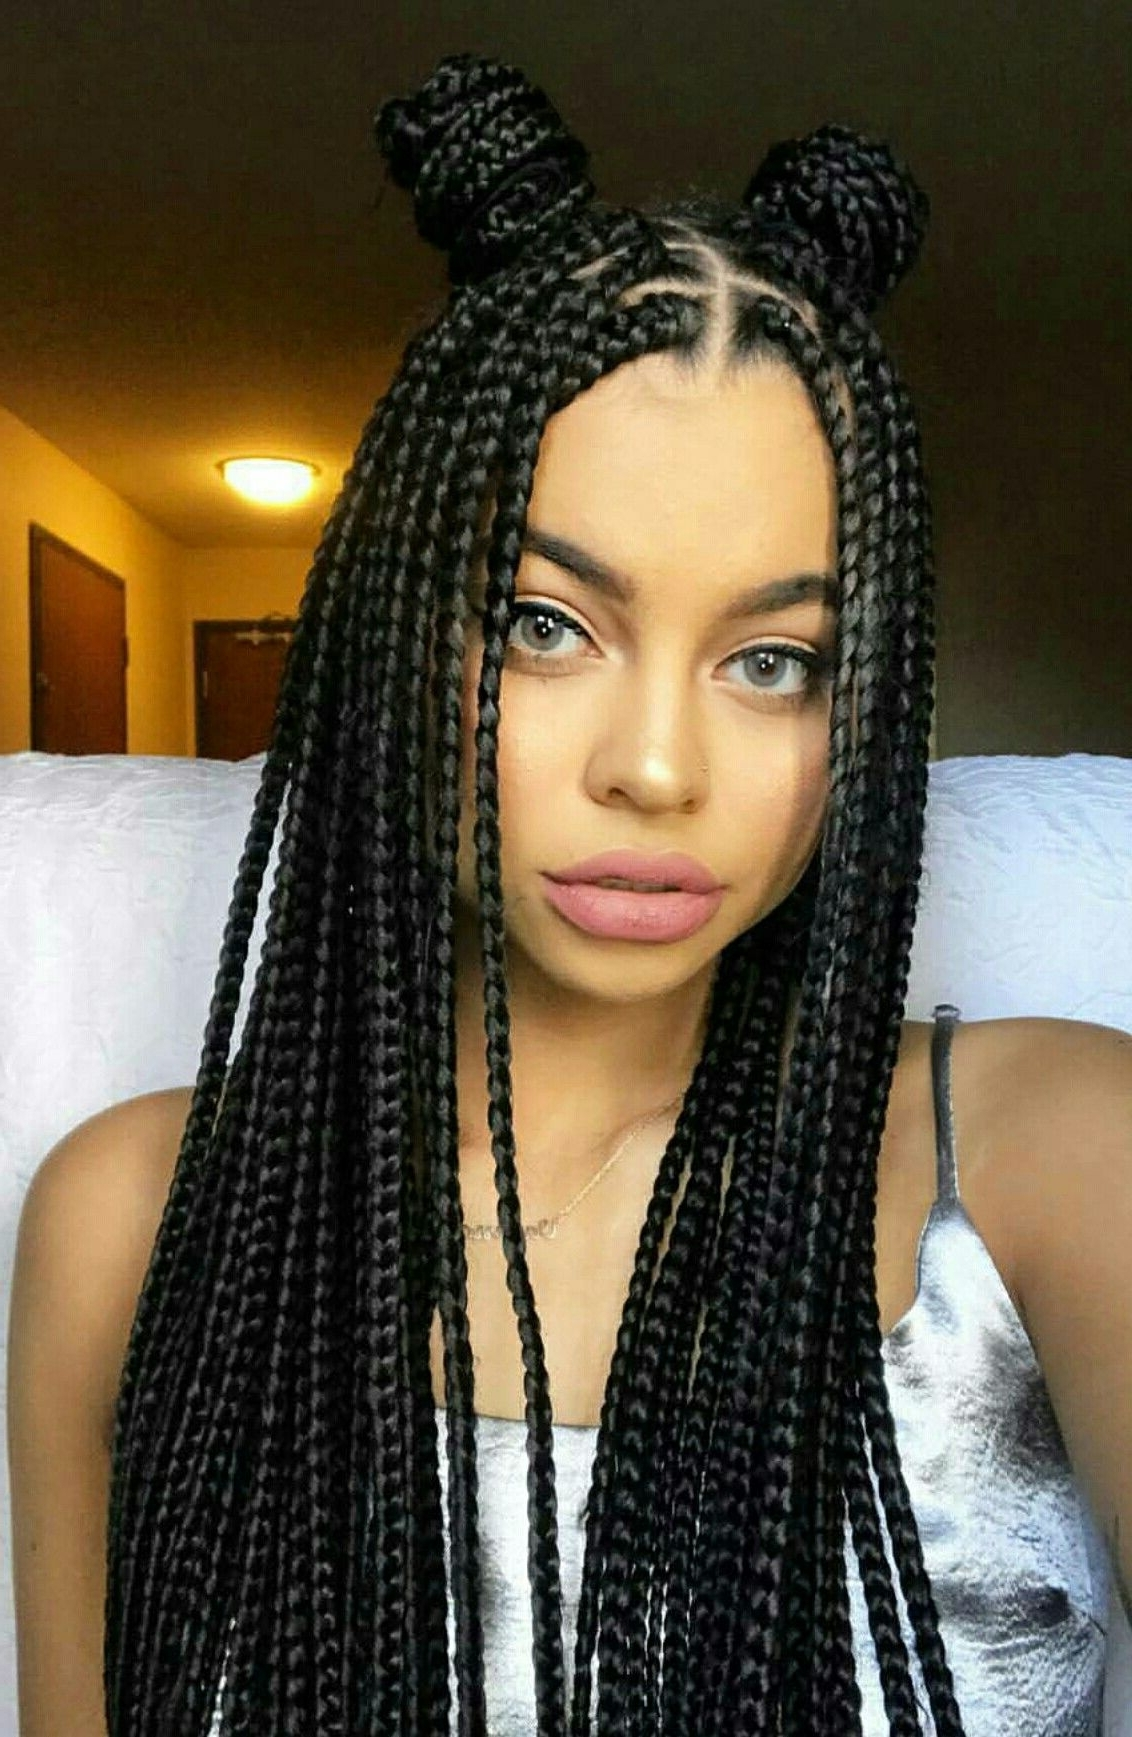 Newest Braided Hairstyles For Black Women With Quick And Easy Braided Hairstyles For African American Hair Black (View 10 of 15)